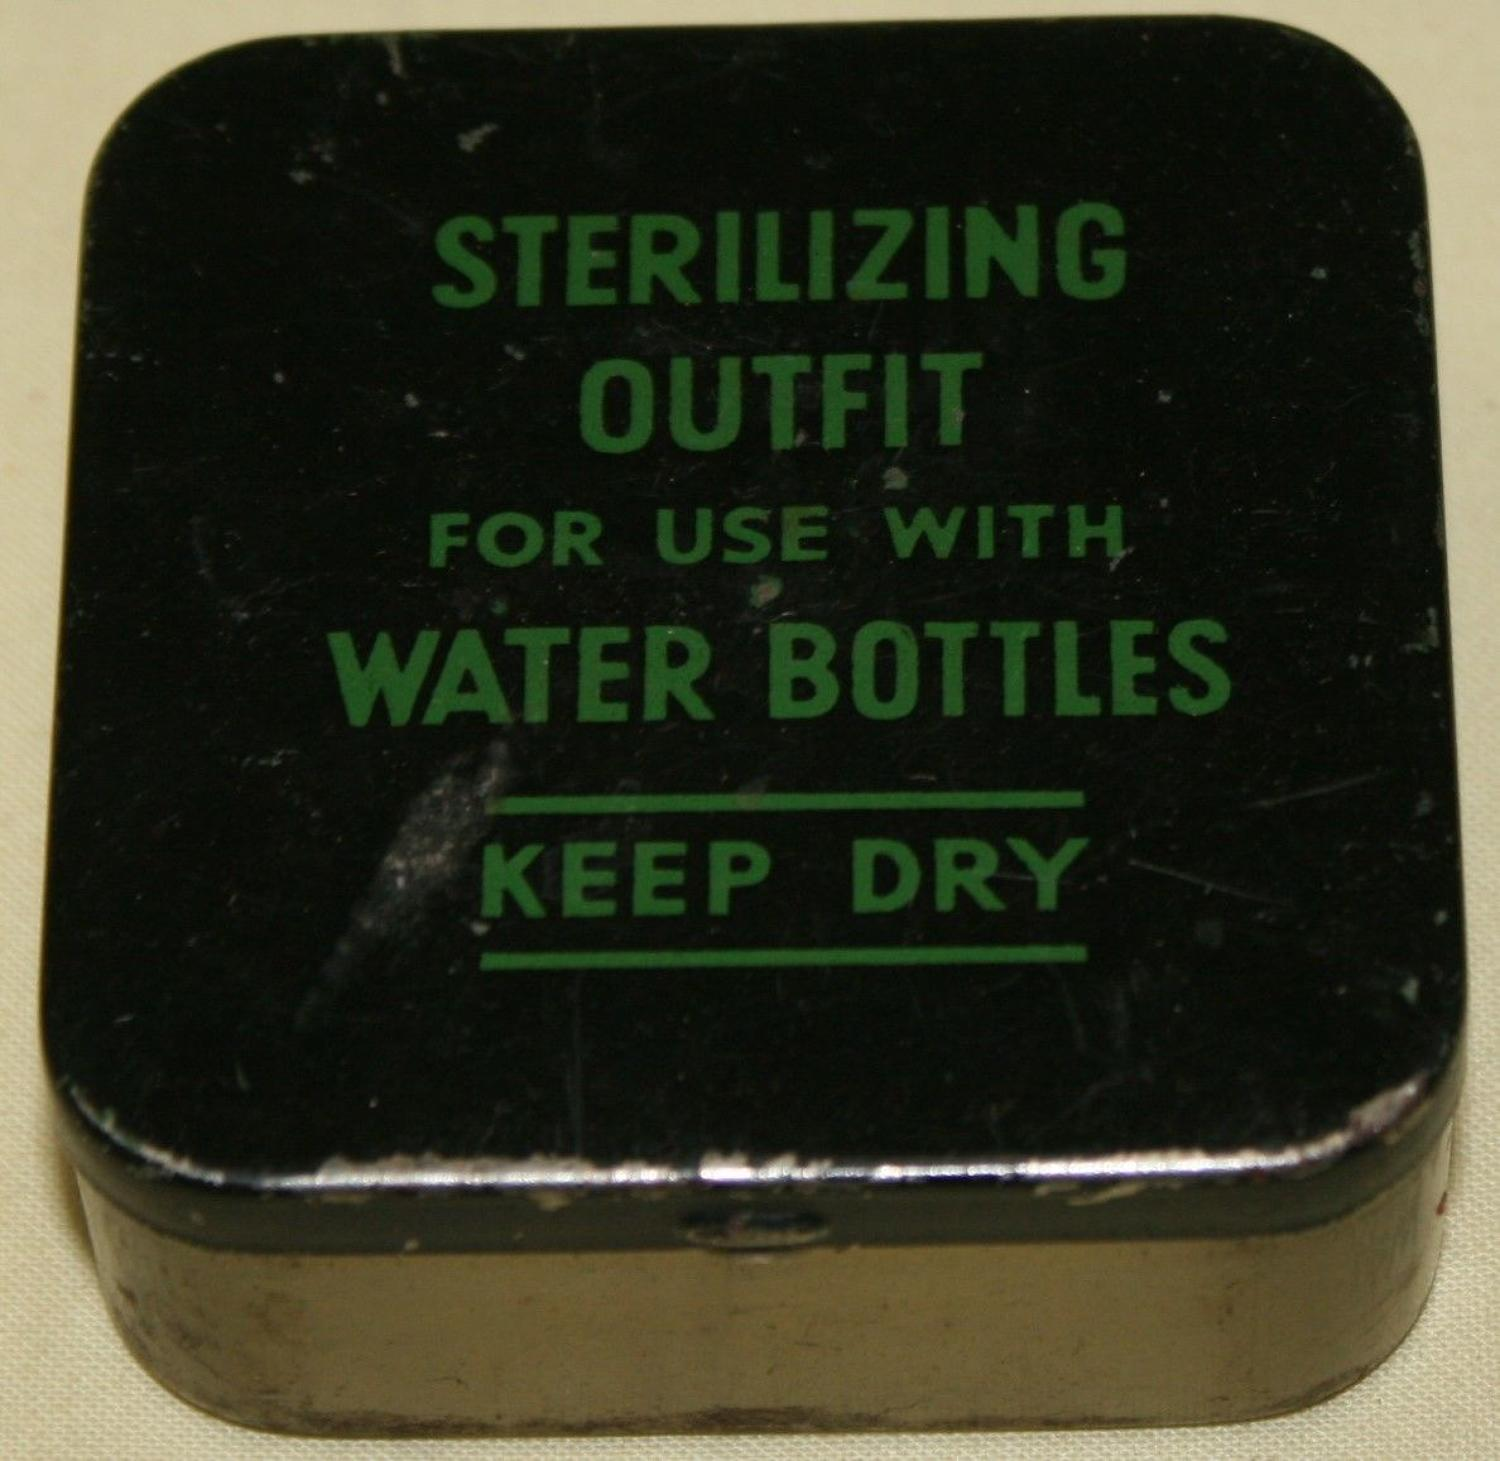 A LATE WWII SCREW CAP WATER STERILIZING OUT FIT